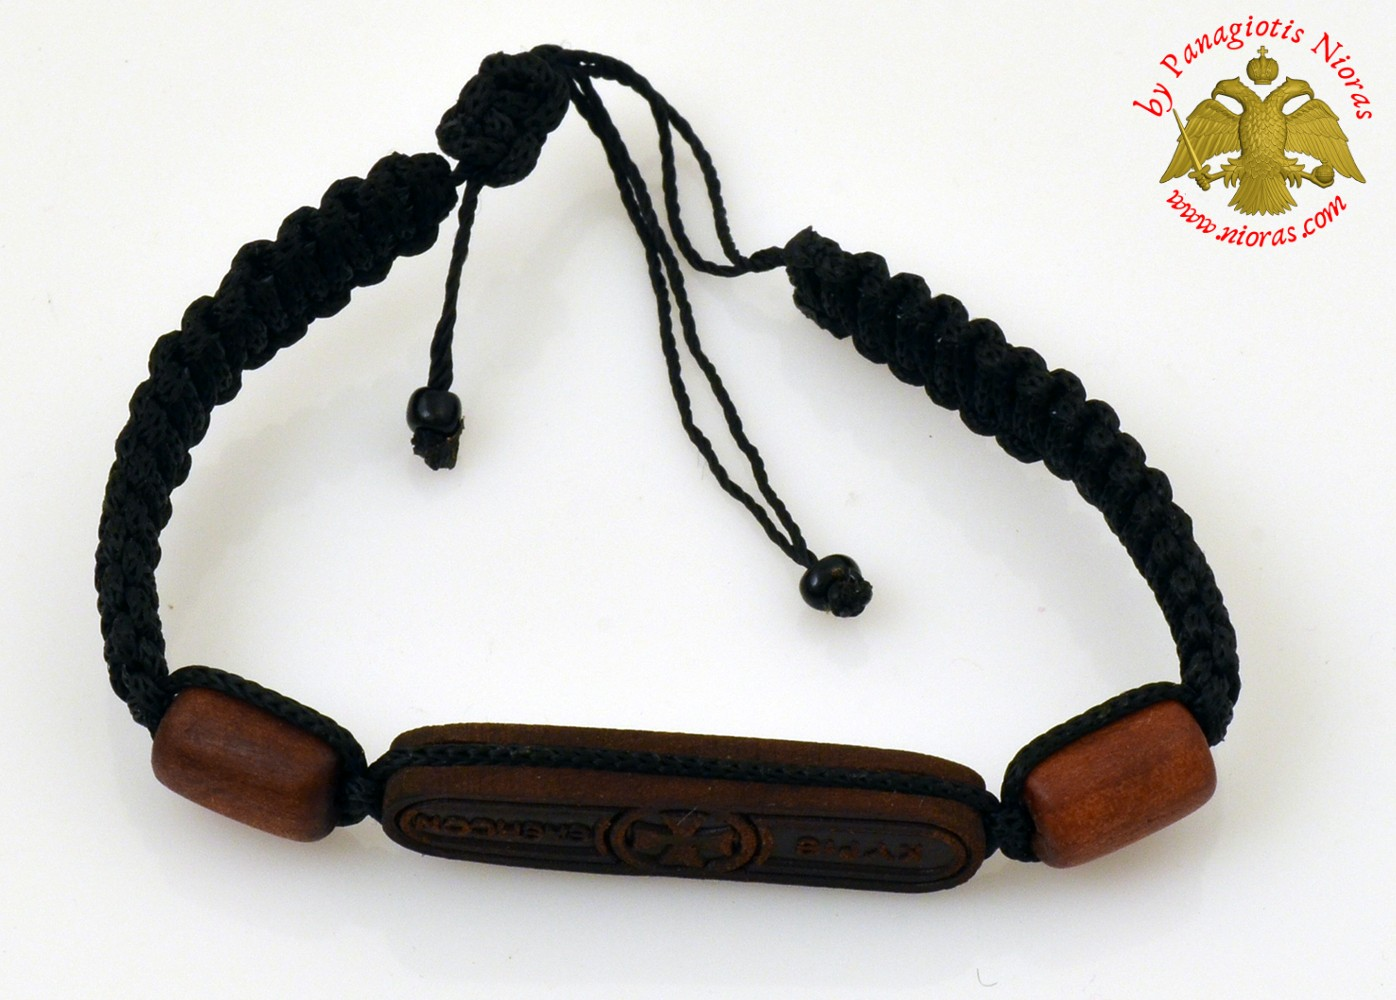 Hand Wrist Praying Rope with Wooden Brown Kyrie Eleison